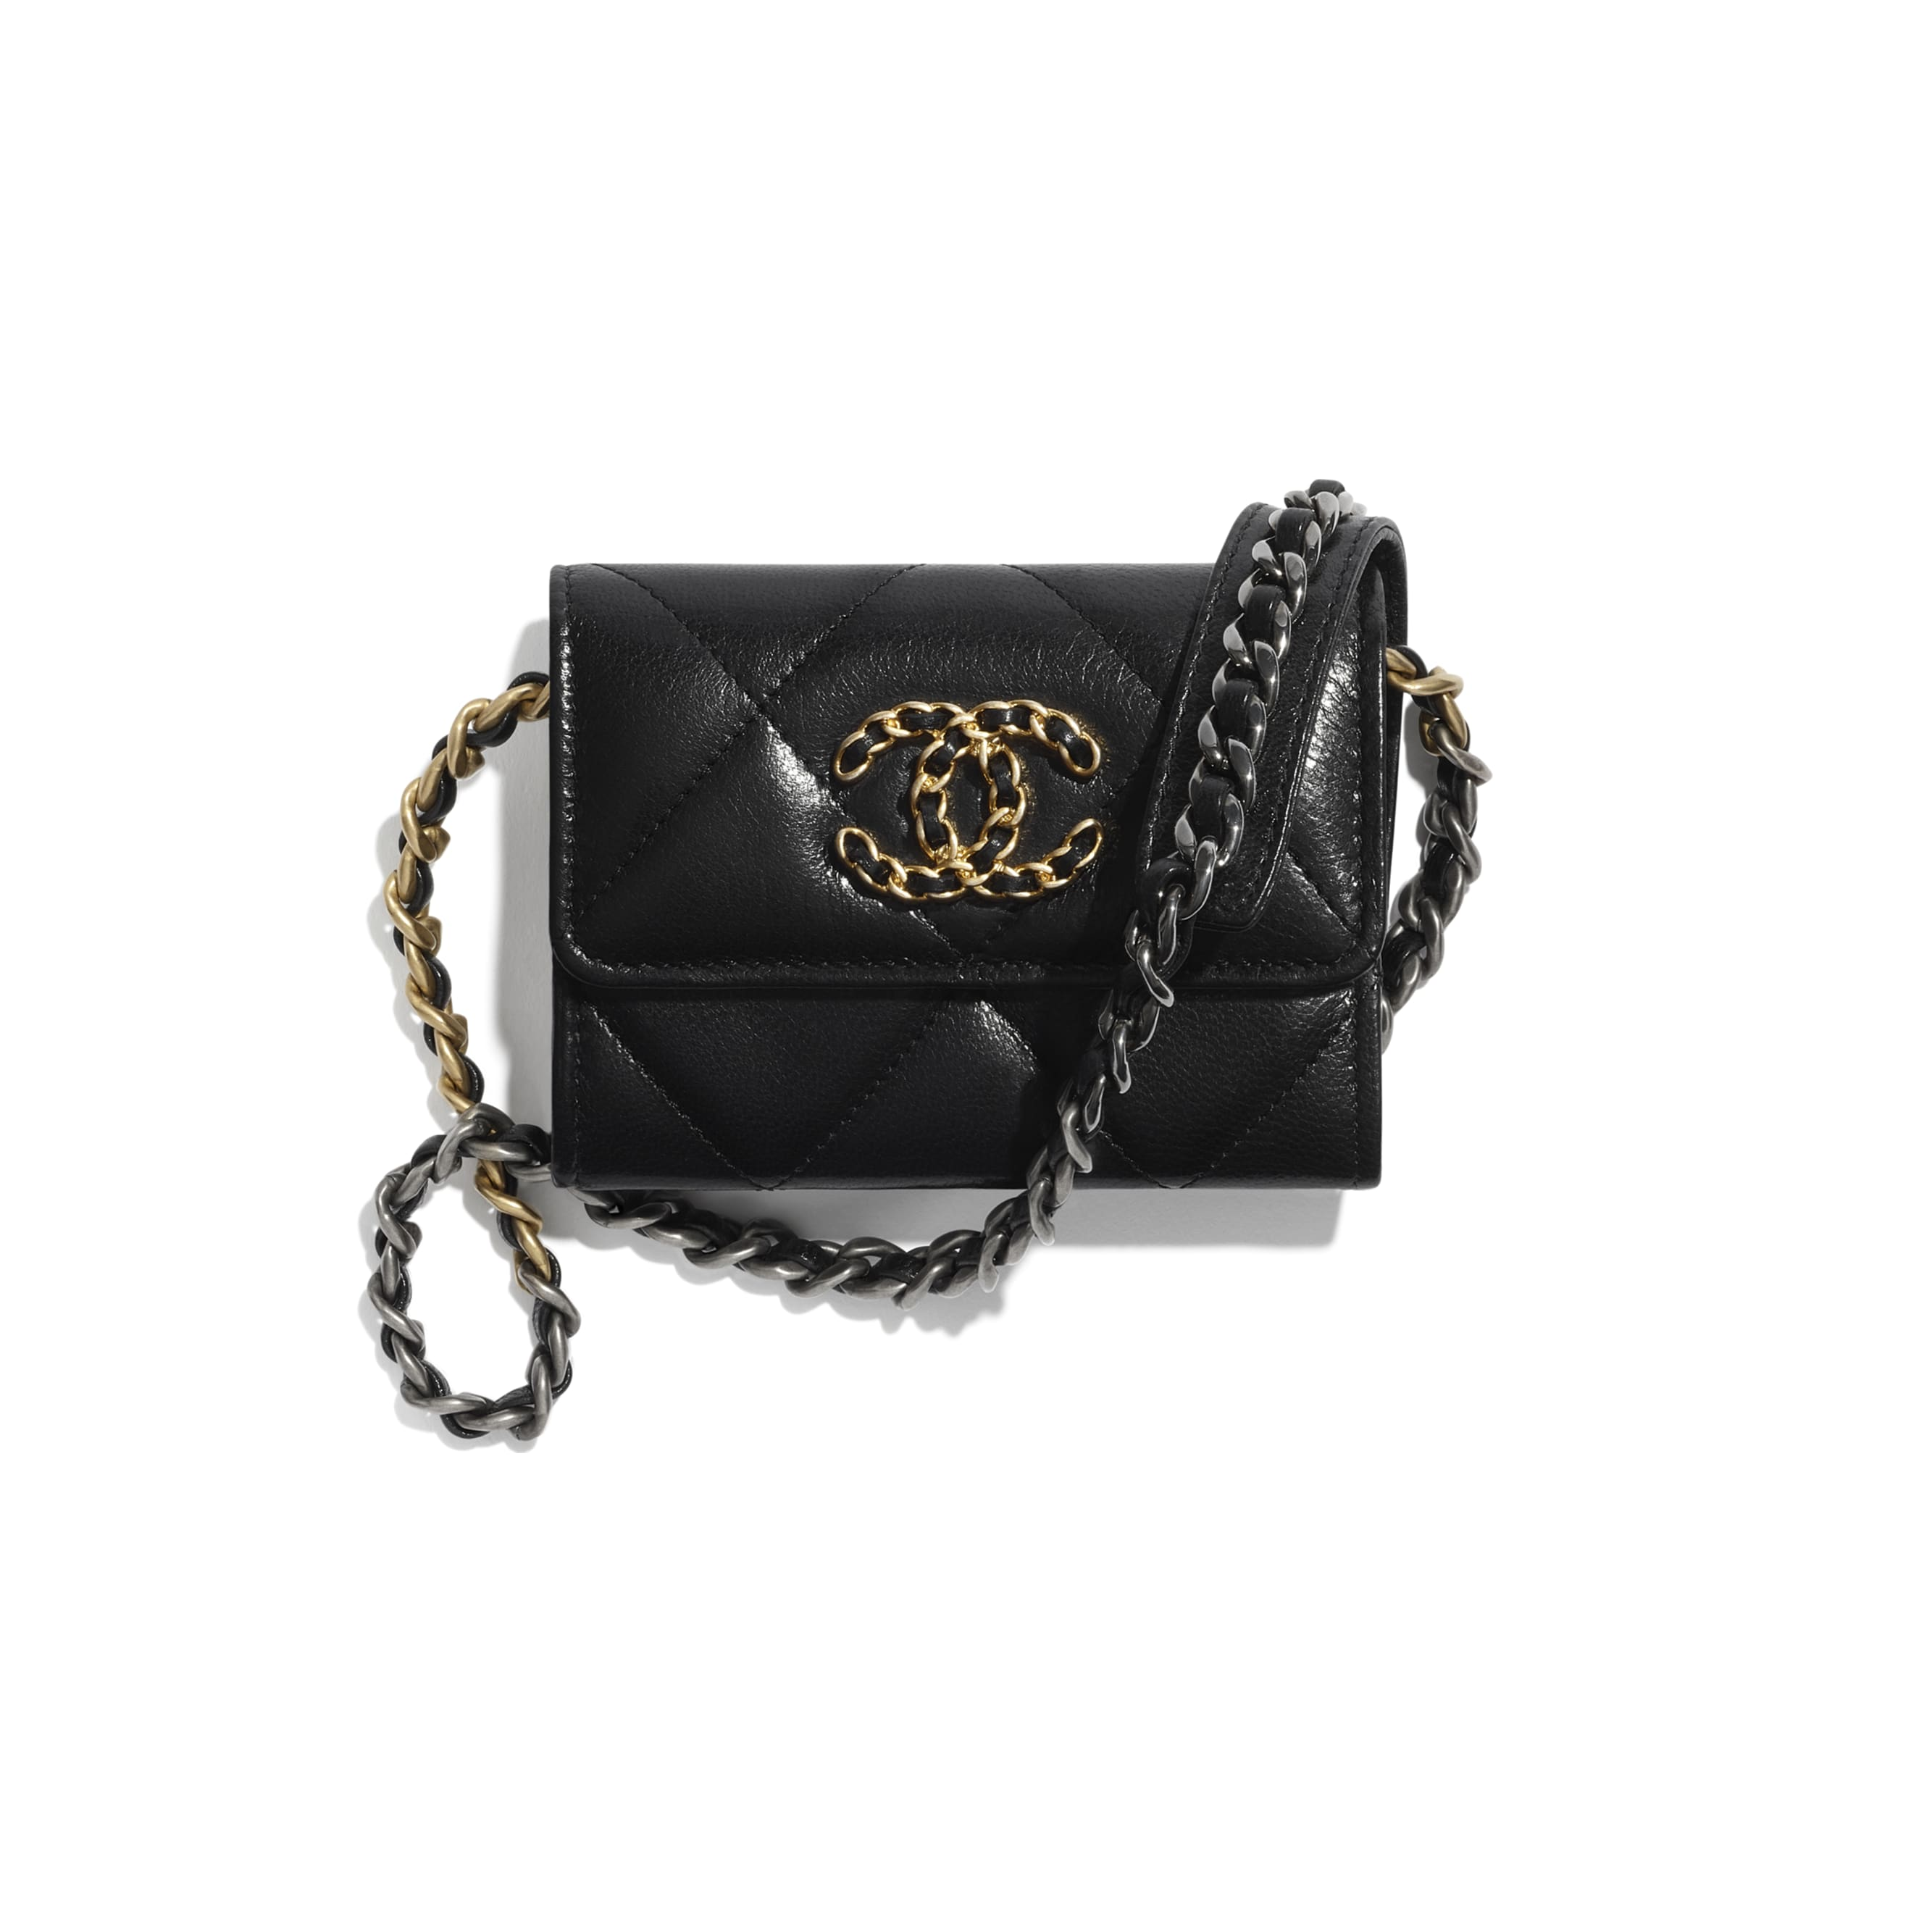 CHANEL 19 Flap Coin Purse with Chain - Black - Shiny Goatskin, Gold-Tone, Silver-Tone & Ruthenium-Finish Metal - CHANEL - Default view - see standard sized version